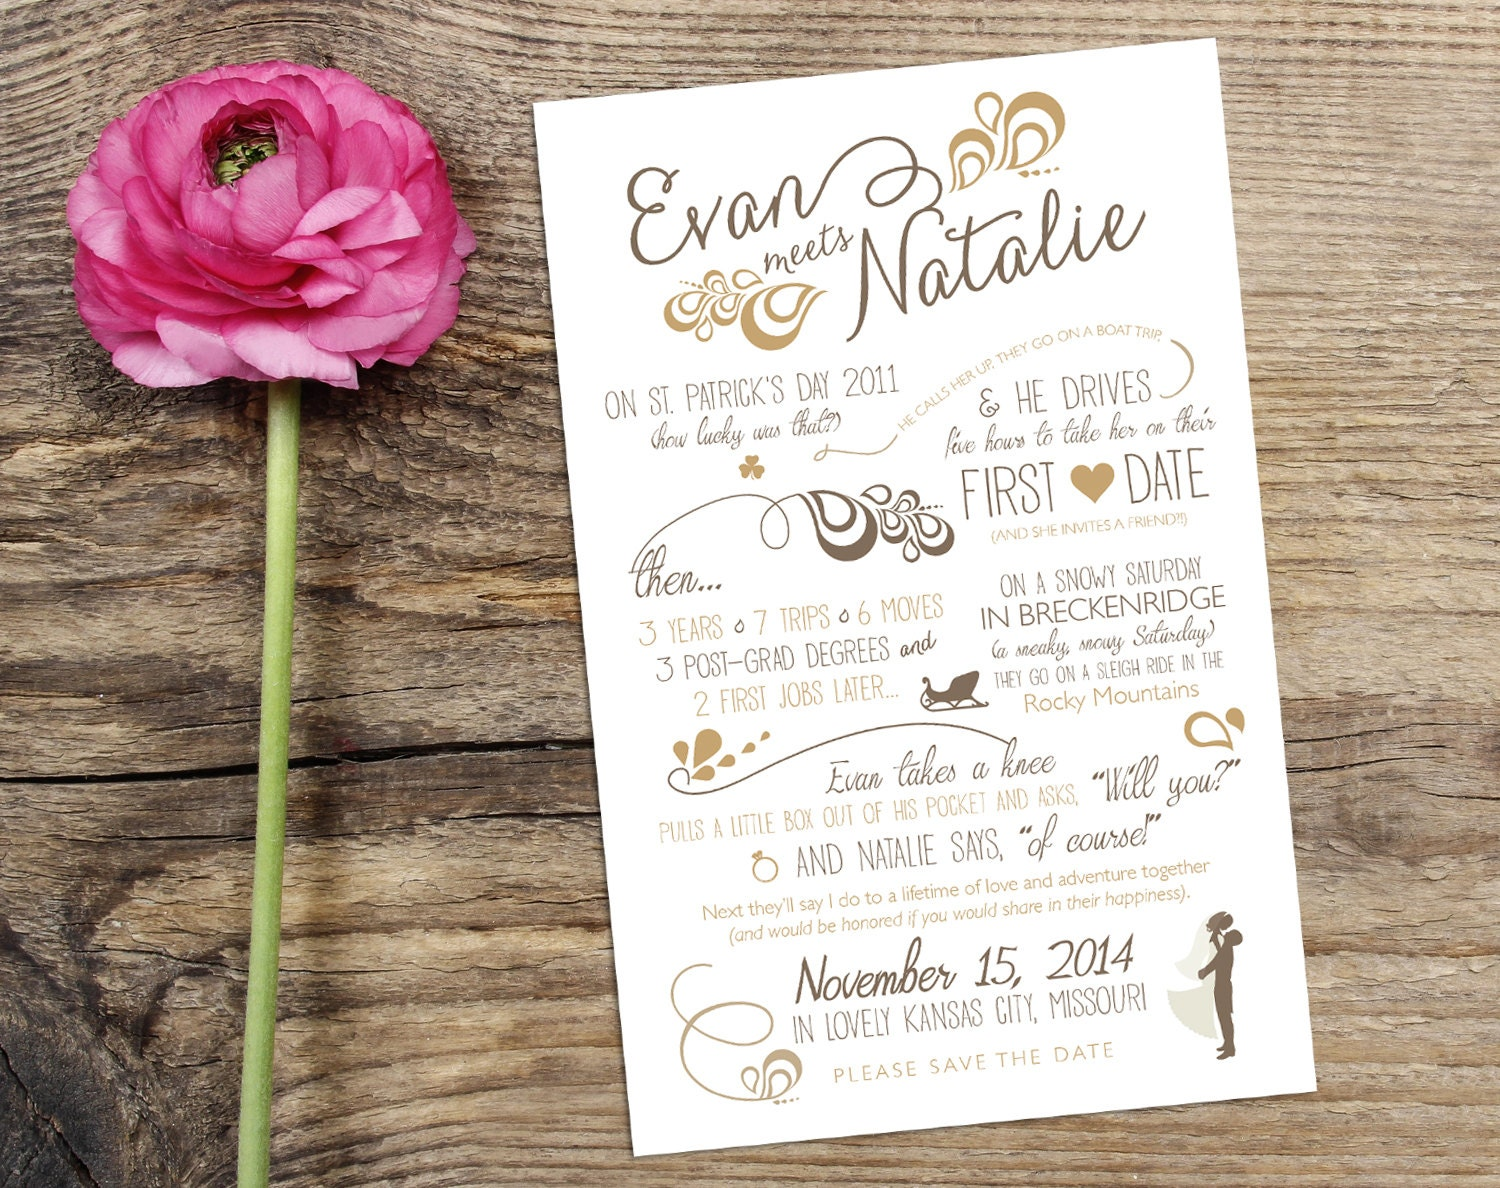 Wedding Love Story Timeline Save the Date Design with Custom